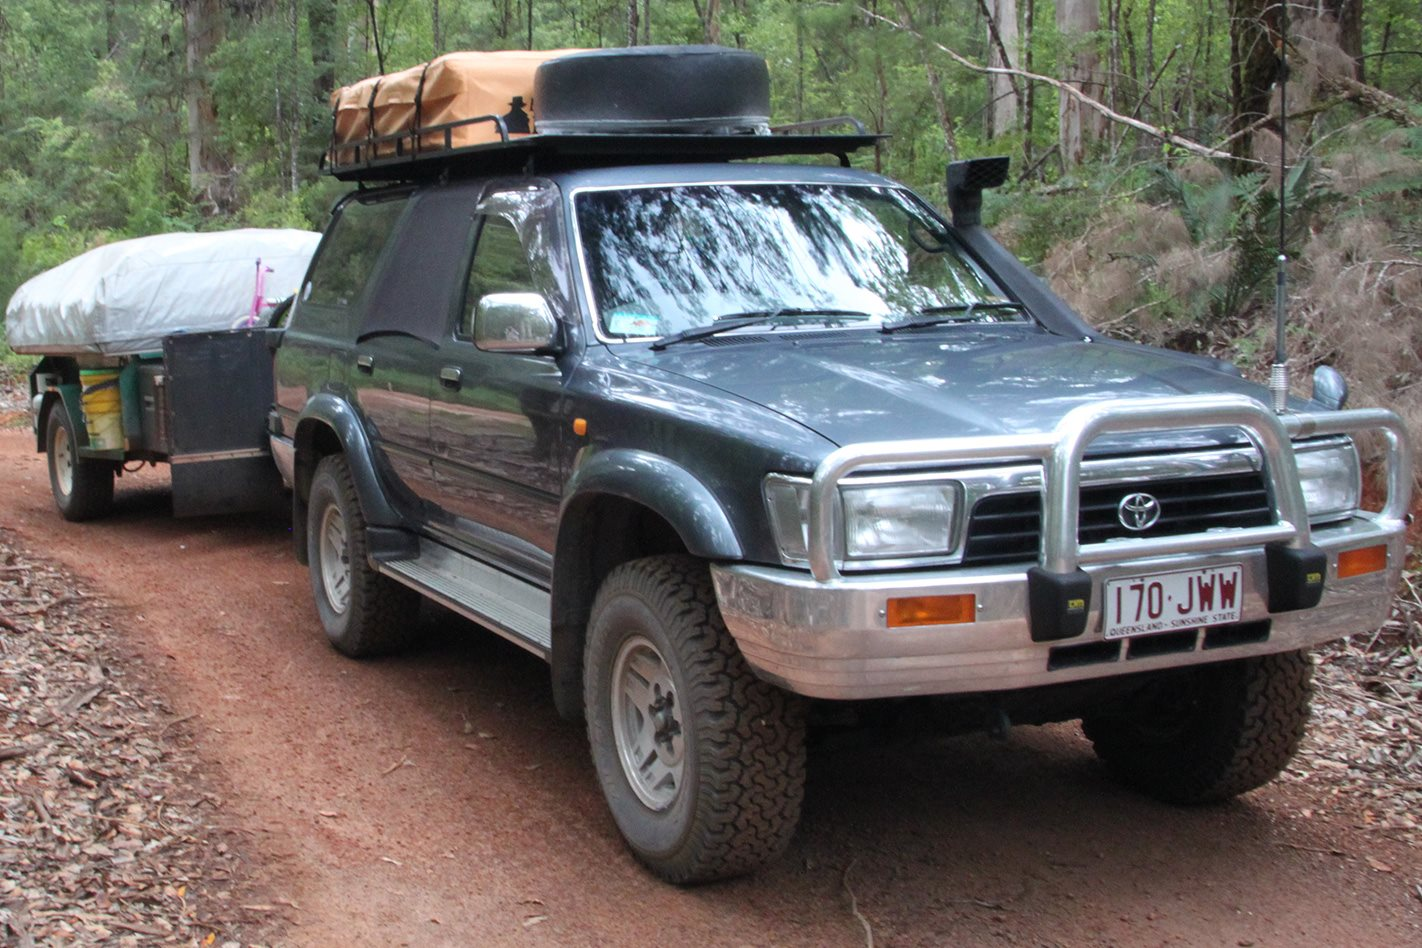 Toyota Land Cruiser in Warren National Park, WA